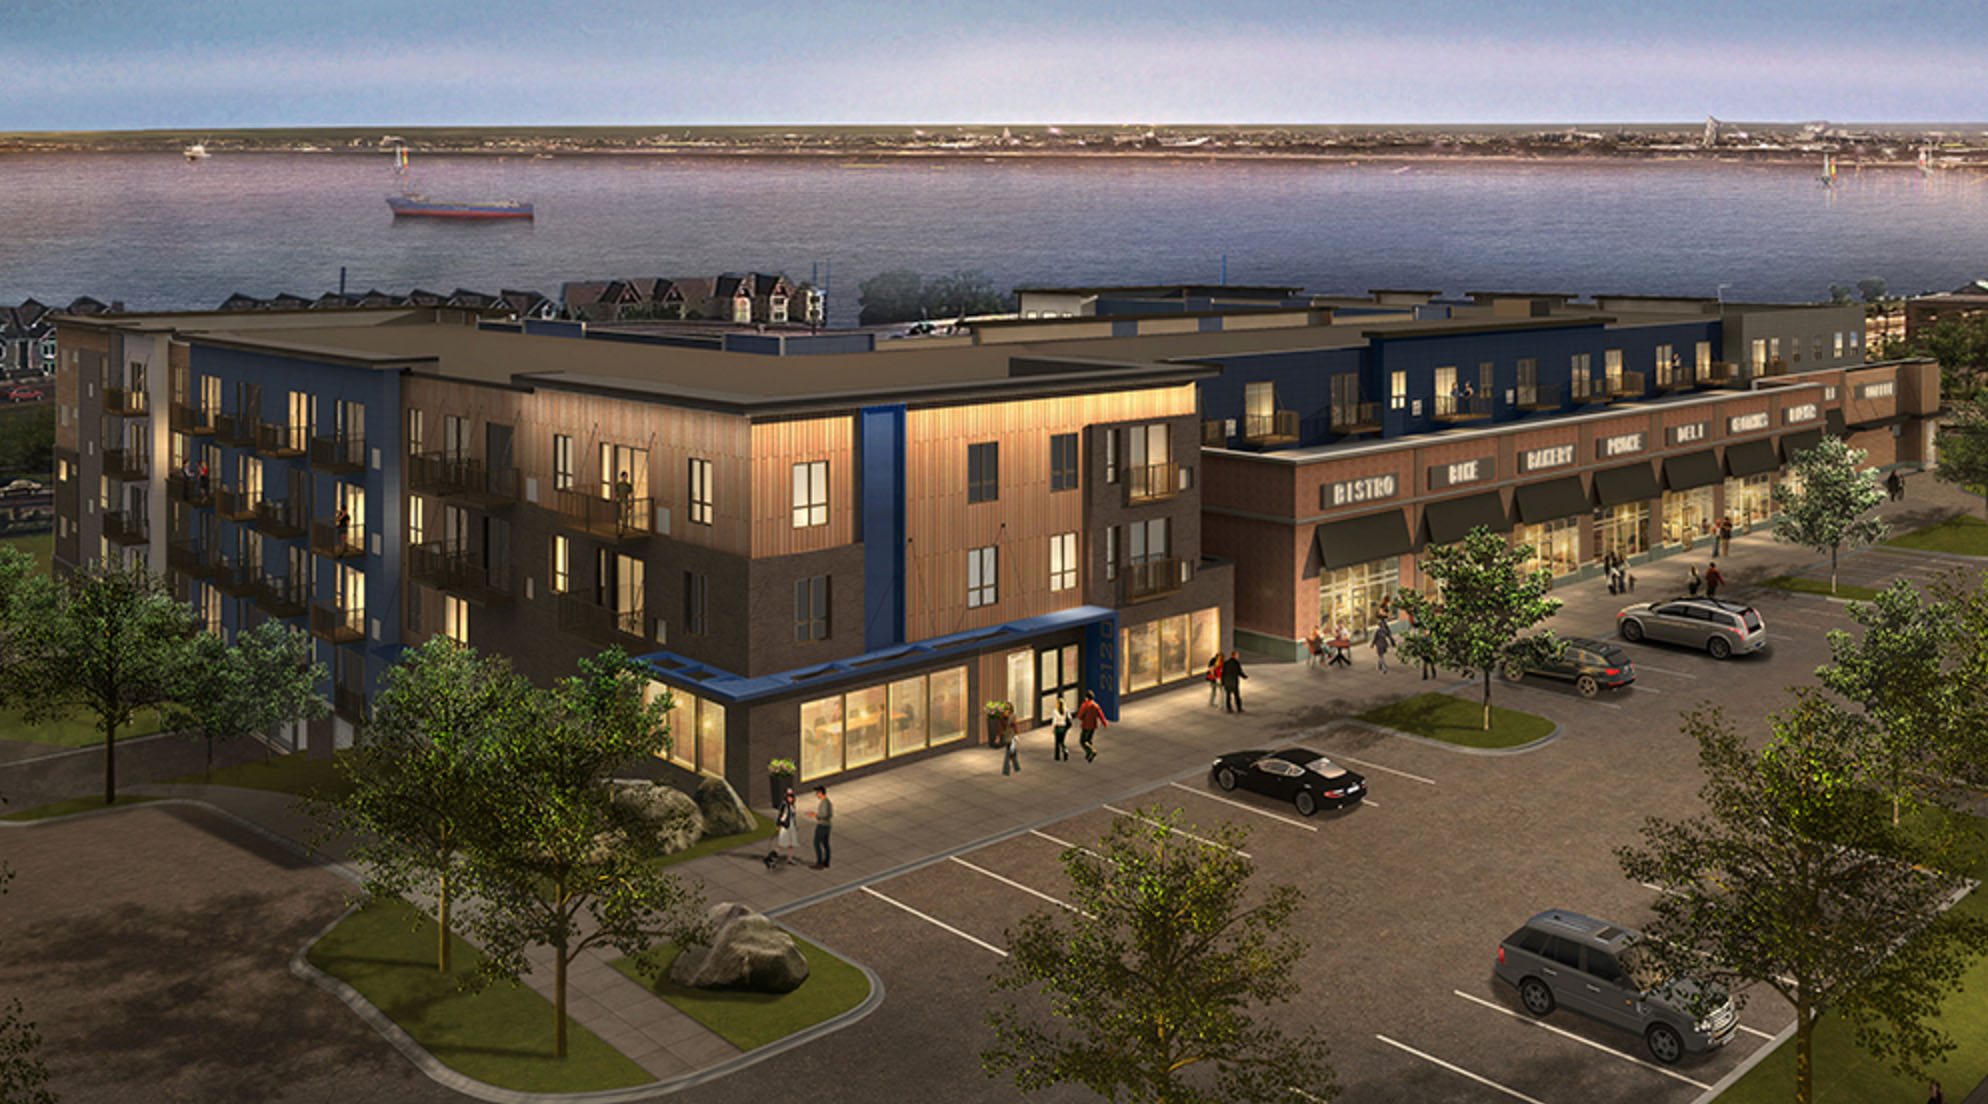 ENDI                                                                                          COMMERCIAL / RESIDENTIAL    2120 LONDON ROAD   DULUTH                                              PLANNED COMPLETION: WINTER 2017                                                                         CLICK HERE TO VIEW THE PROJECT PAGE